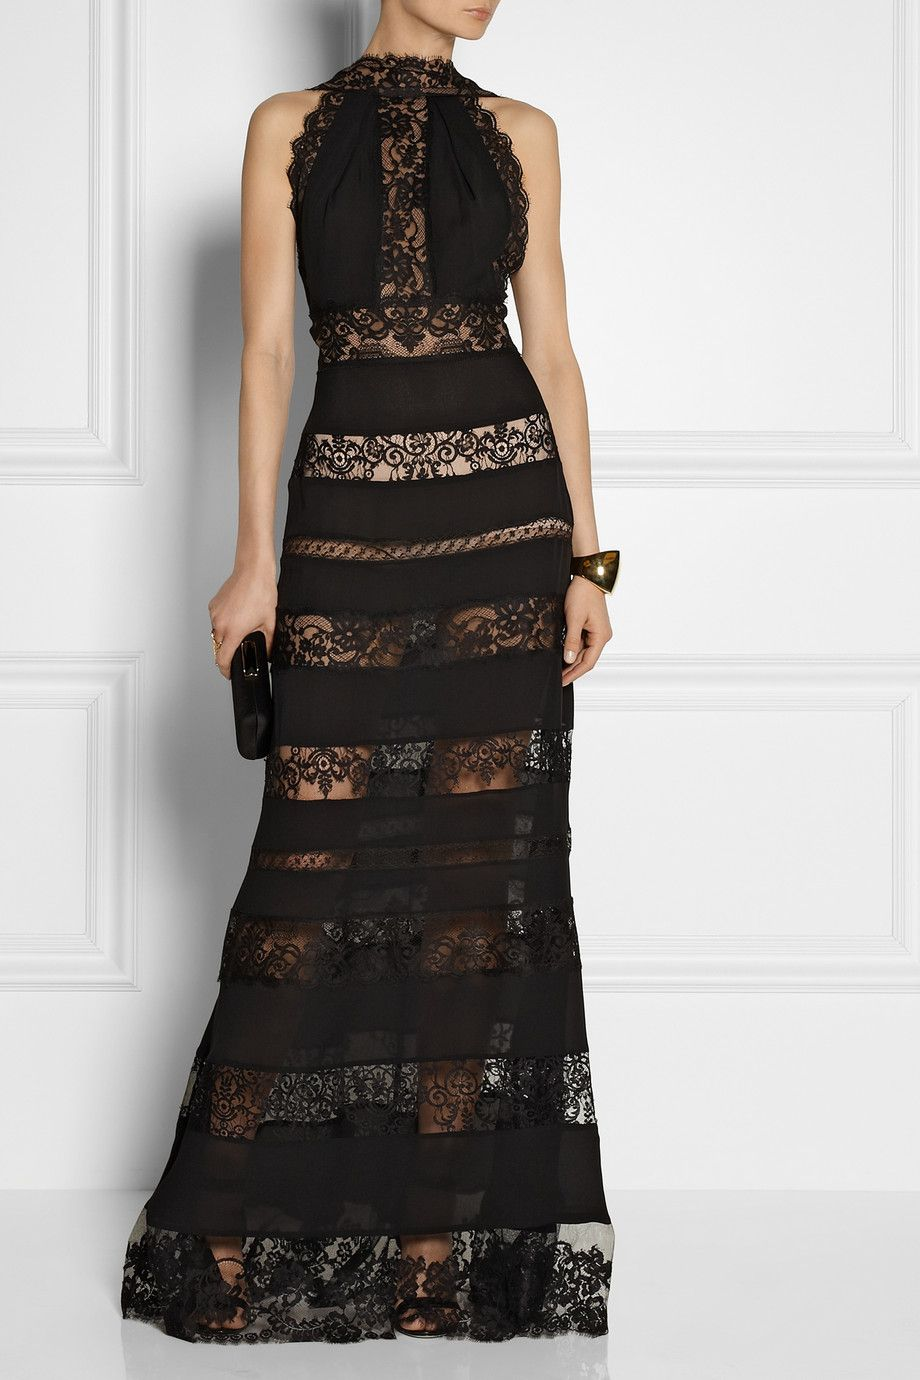 Elie saab paneled lace and cottonblend georgette gown fashion